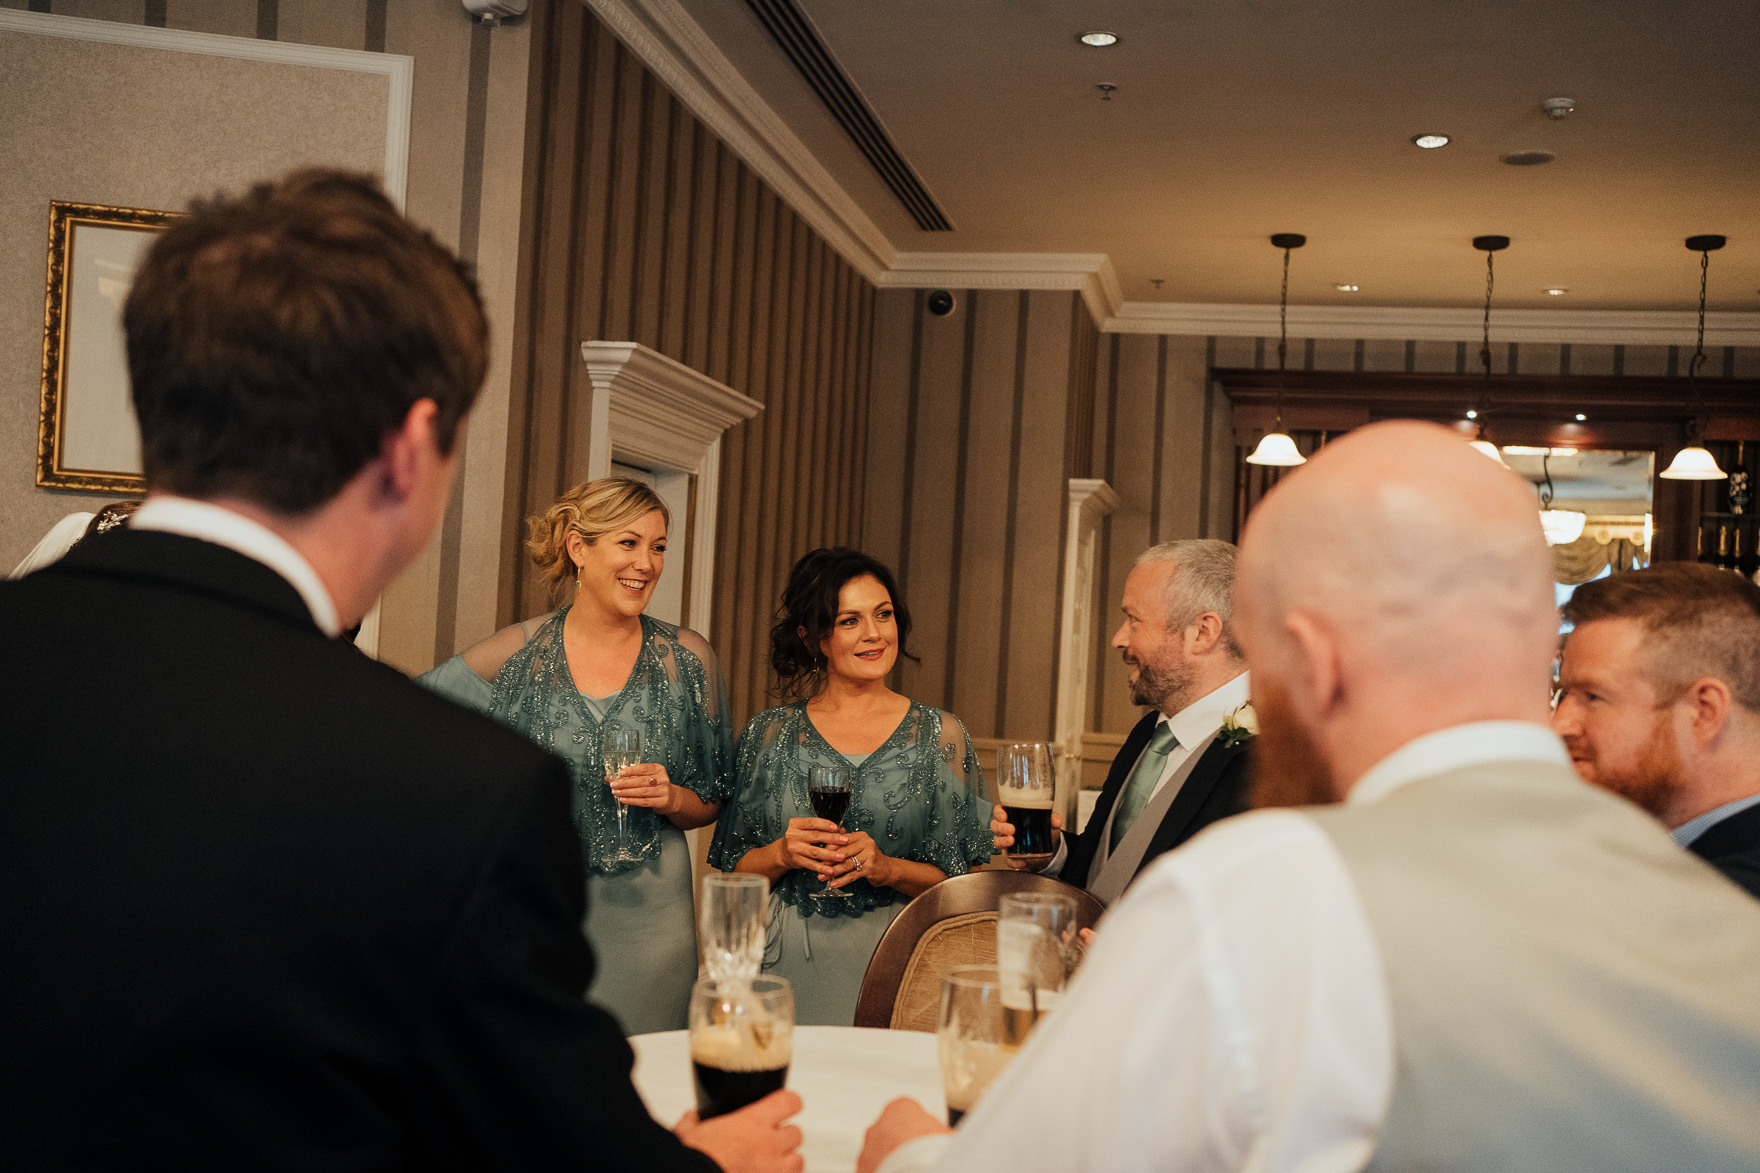 A group of people standing around a table with wine glasses